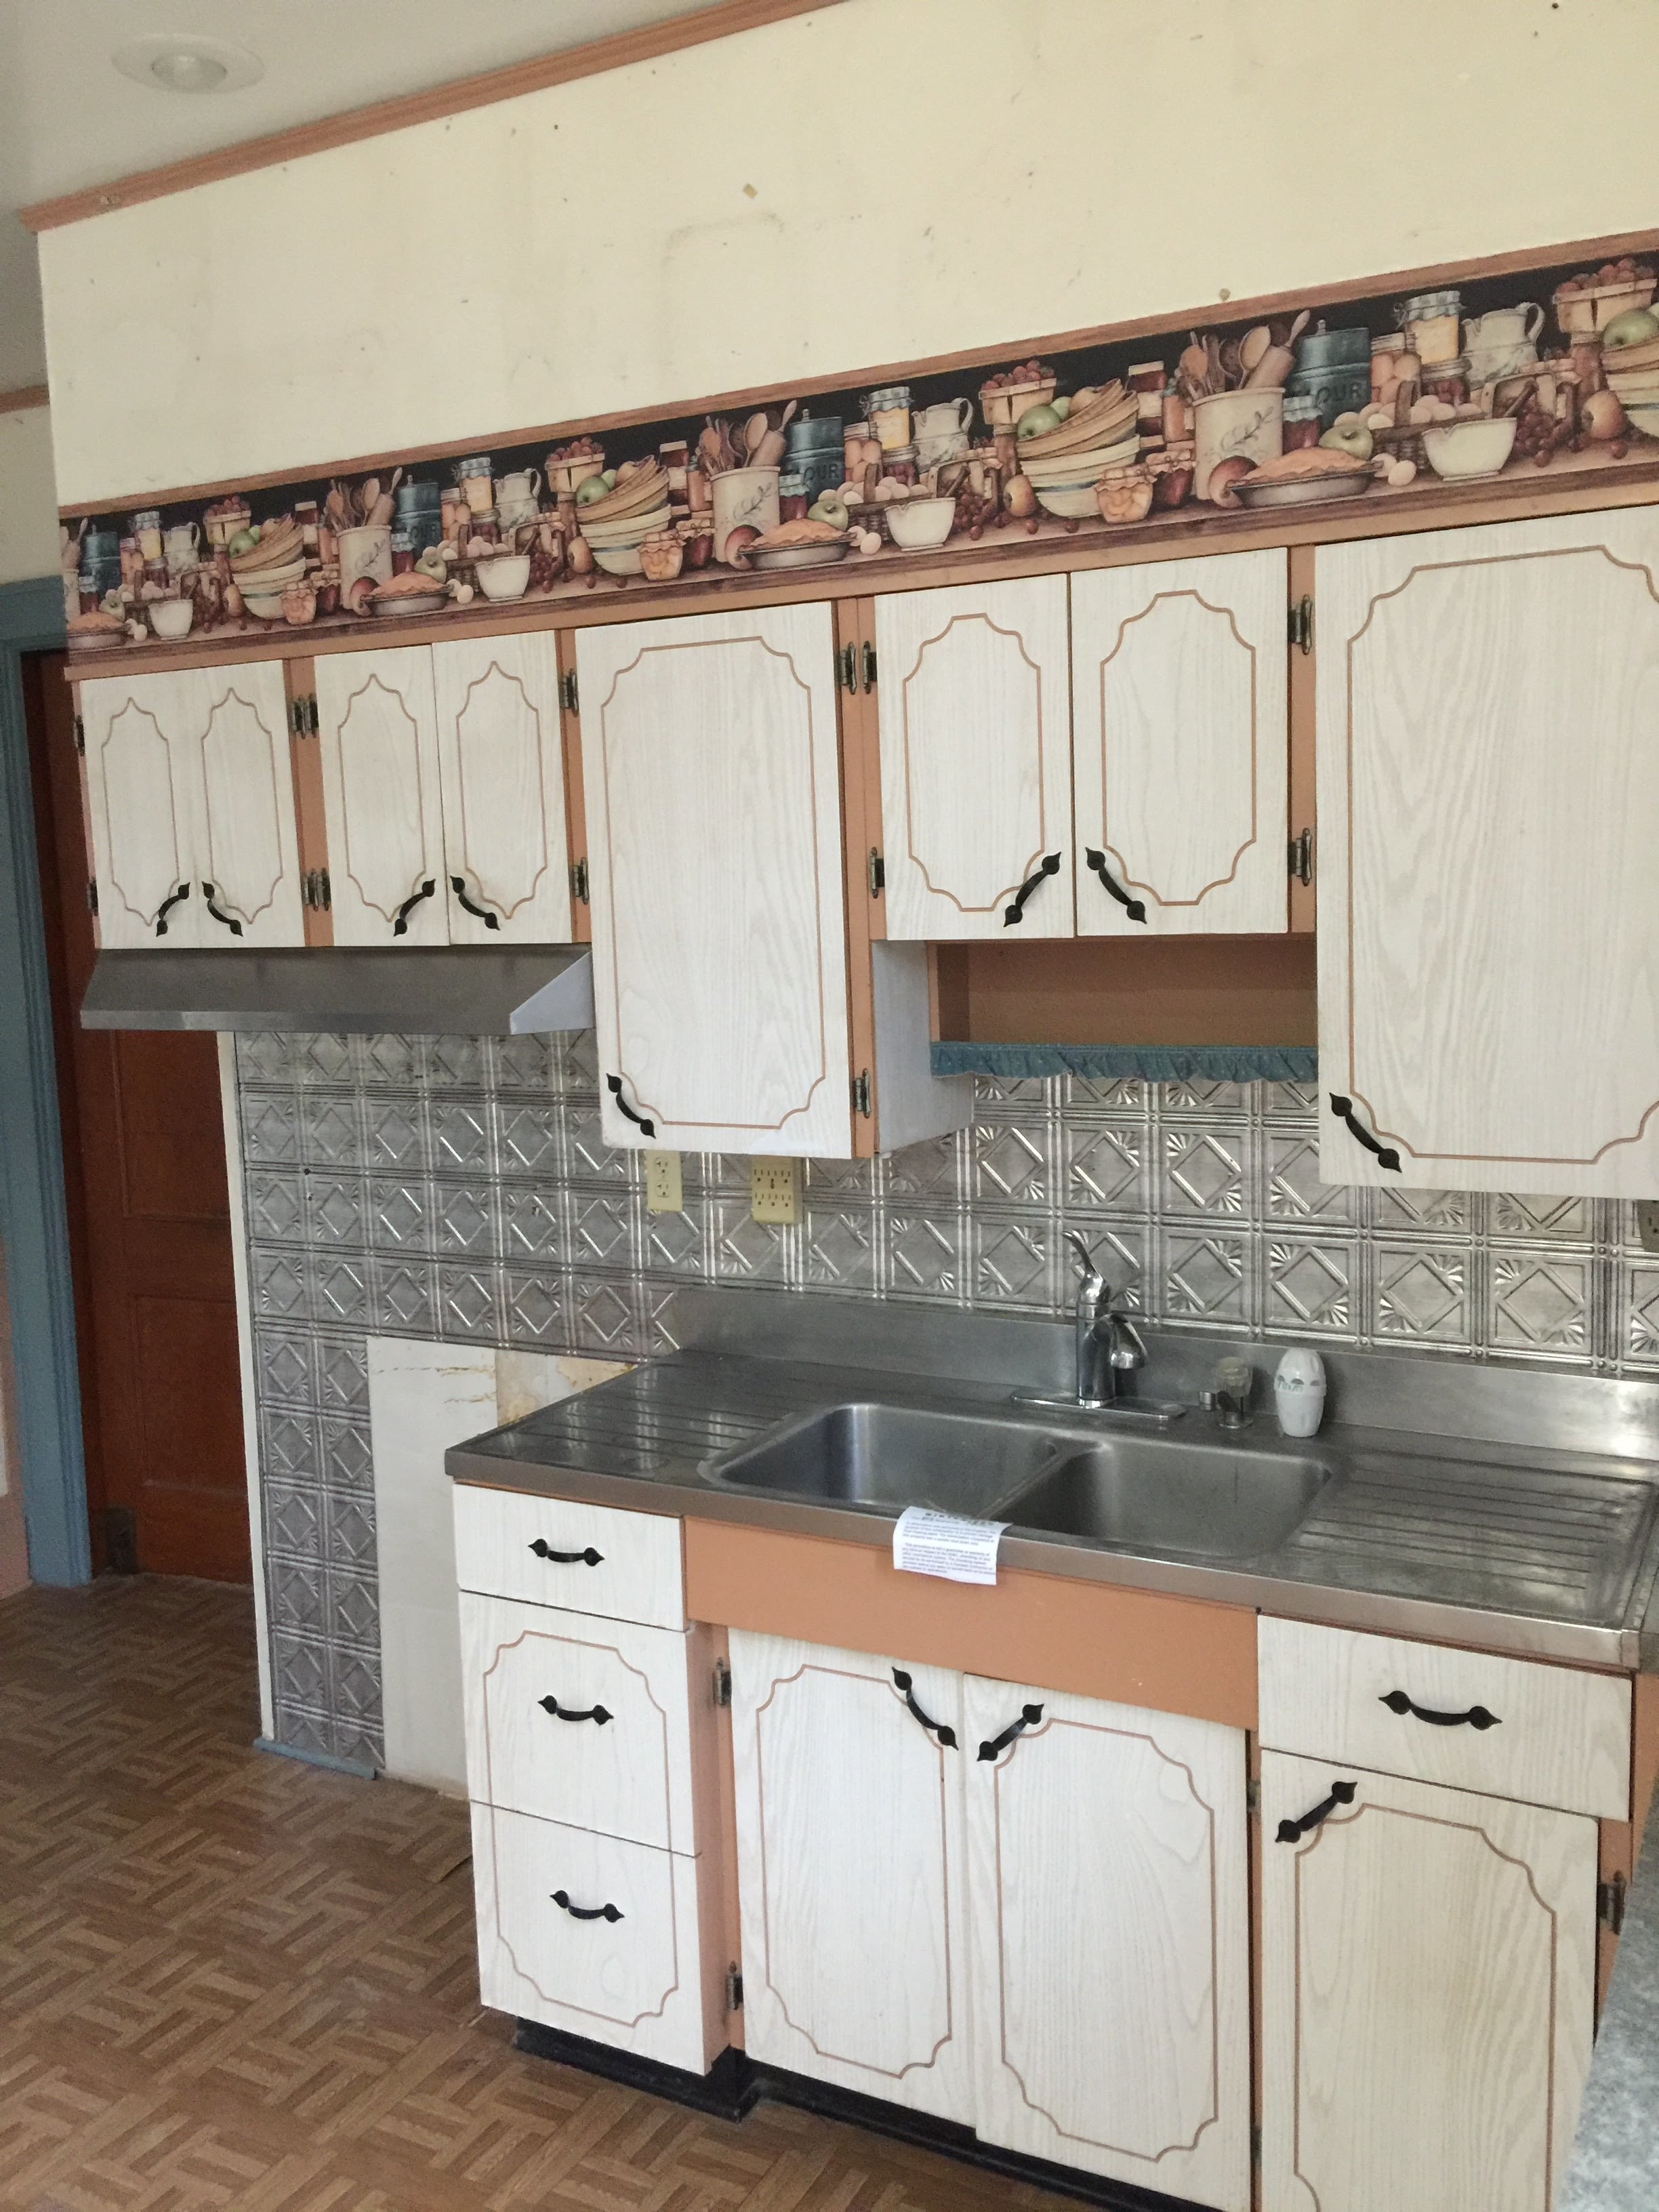 The Ugliest Kitchen in America